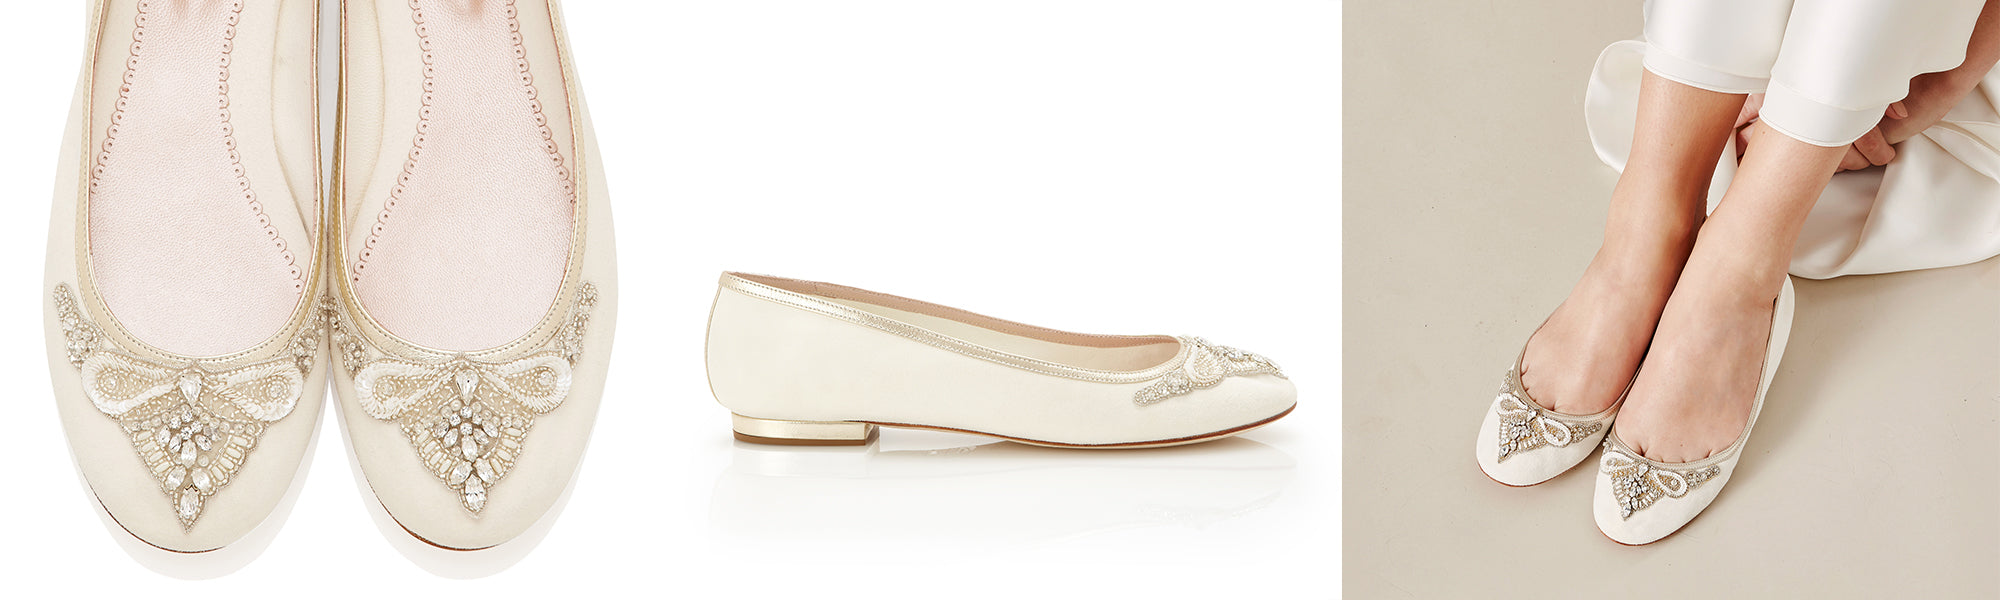 Carrie Flat Embellished Bridal Pumps for Your Wedding Day